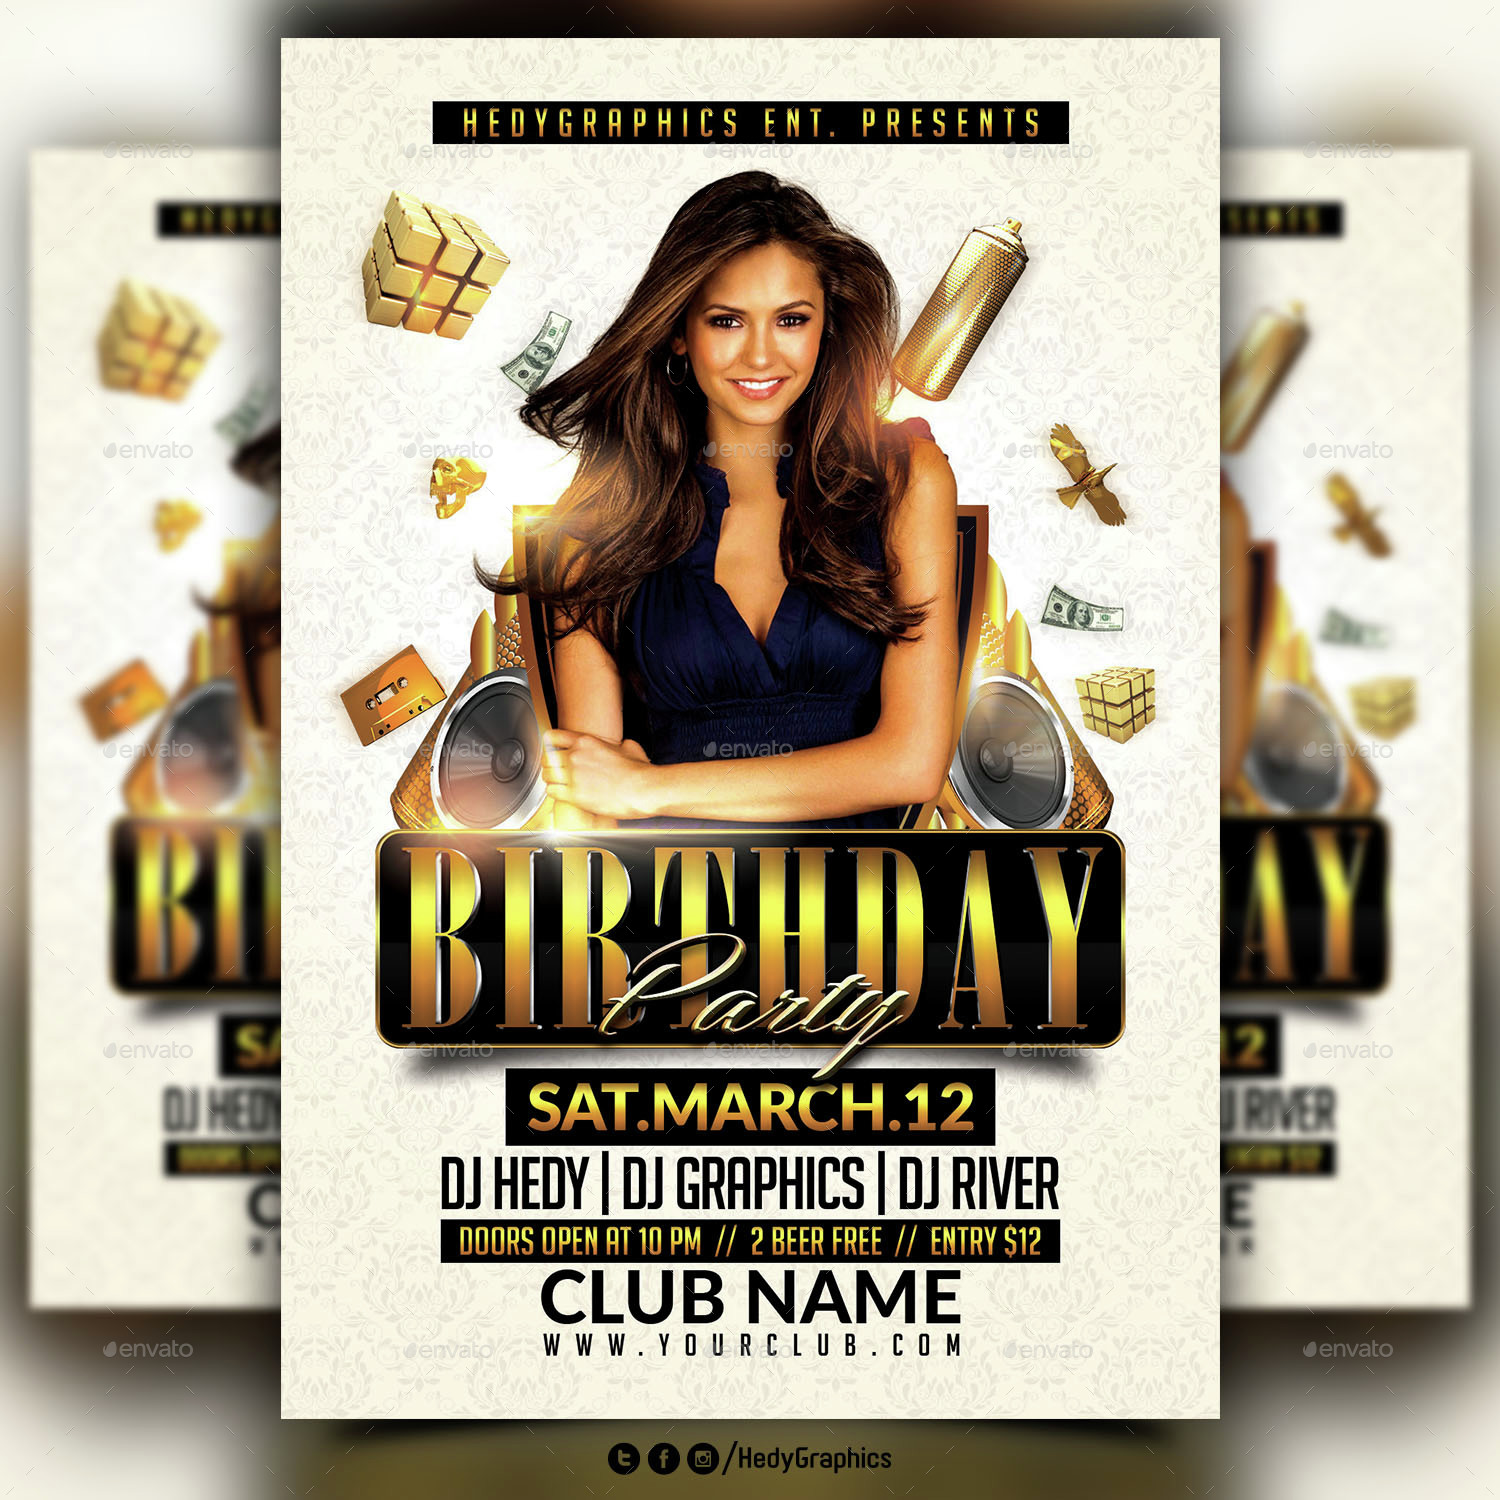 birthday party flyer template by hedygraphics graphicriver